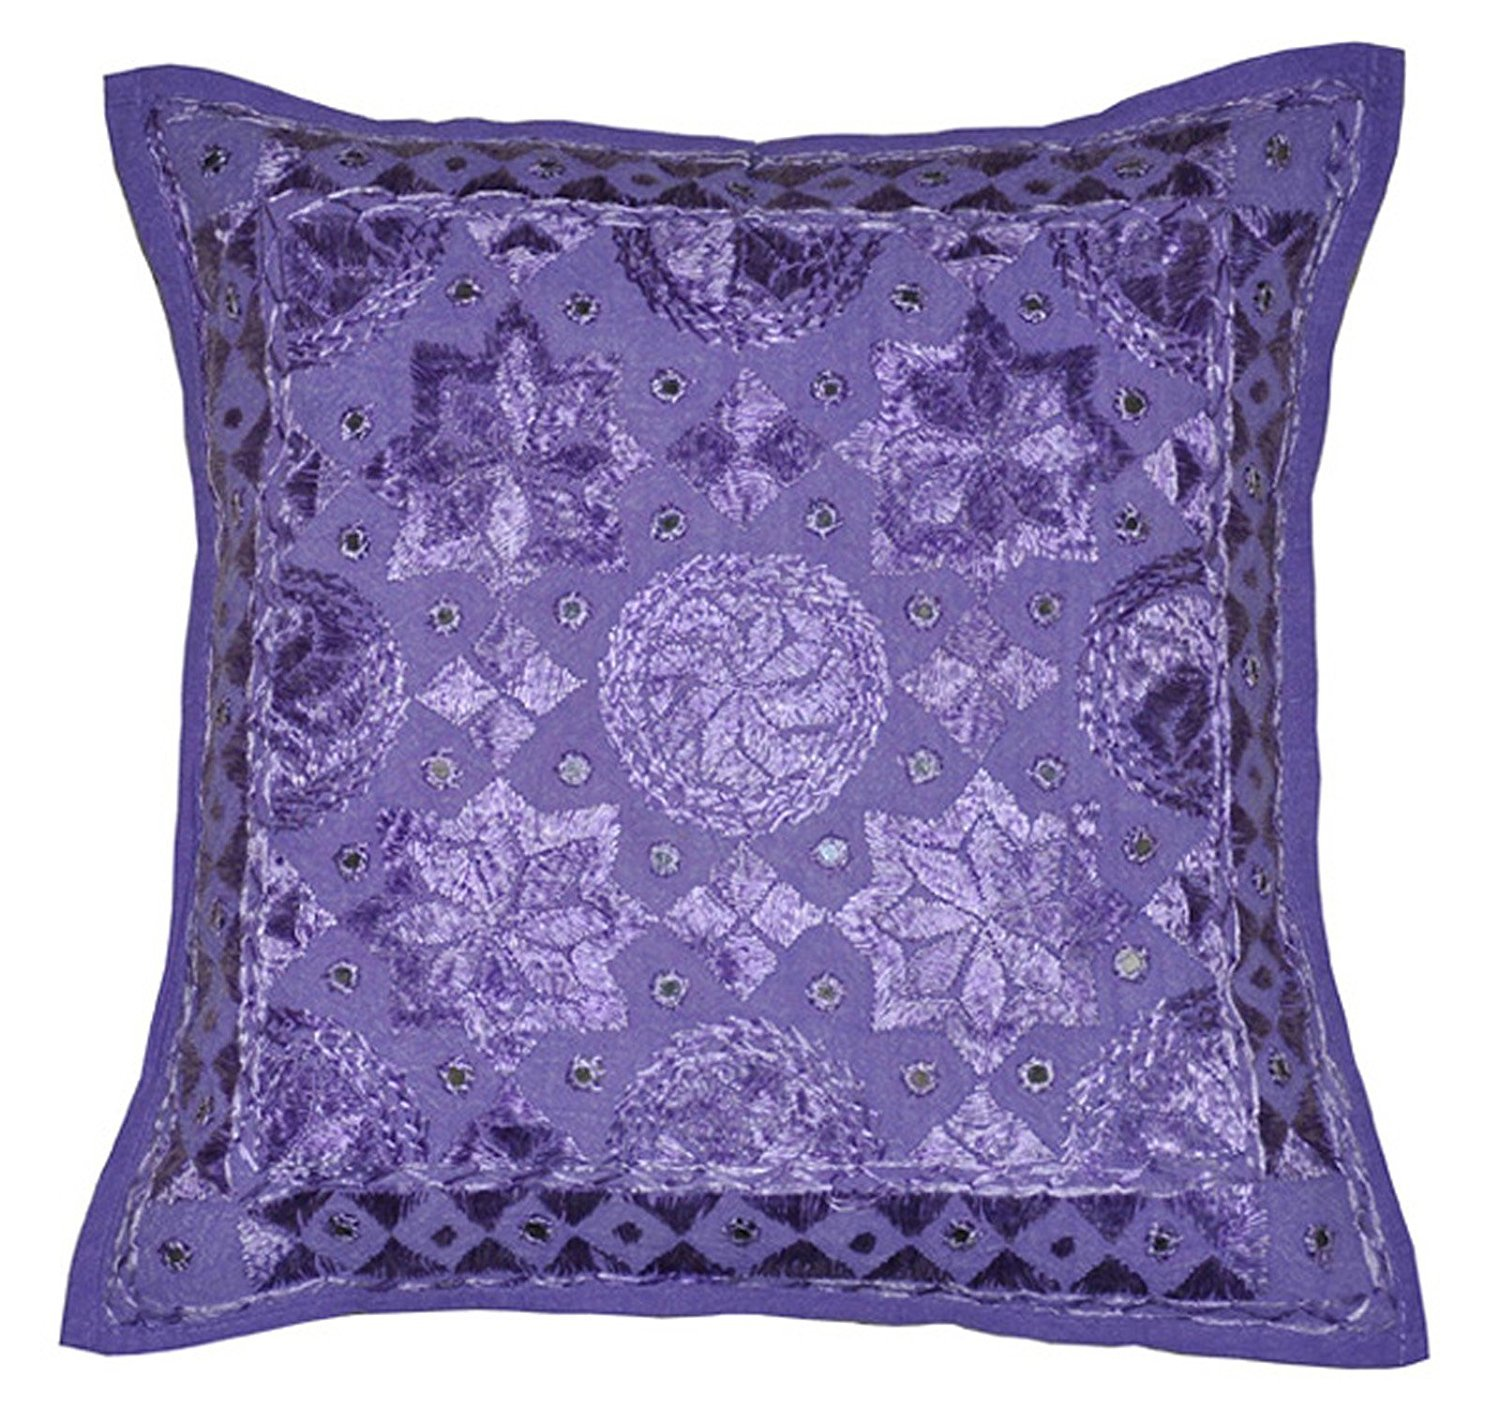 Indian Embroidery Work Handmade Cotton Pillow Case, Mirror Cushion Cover, Decorative Sofa Boho Chic Bohemian Pillow Throw (16x16) inch (Purple) Sophia Art